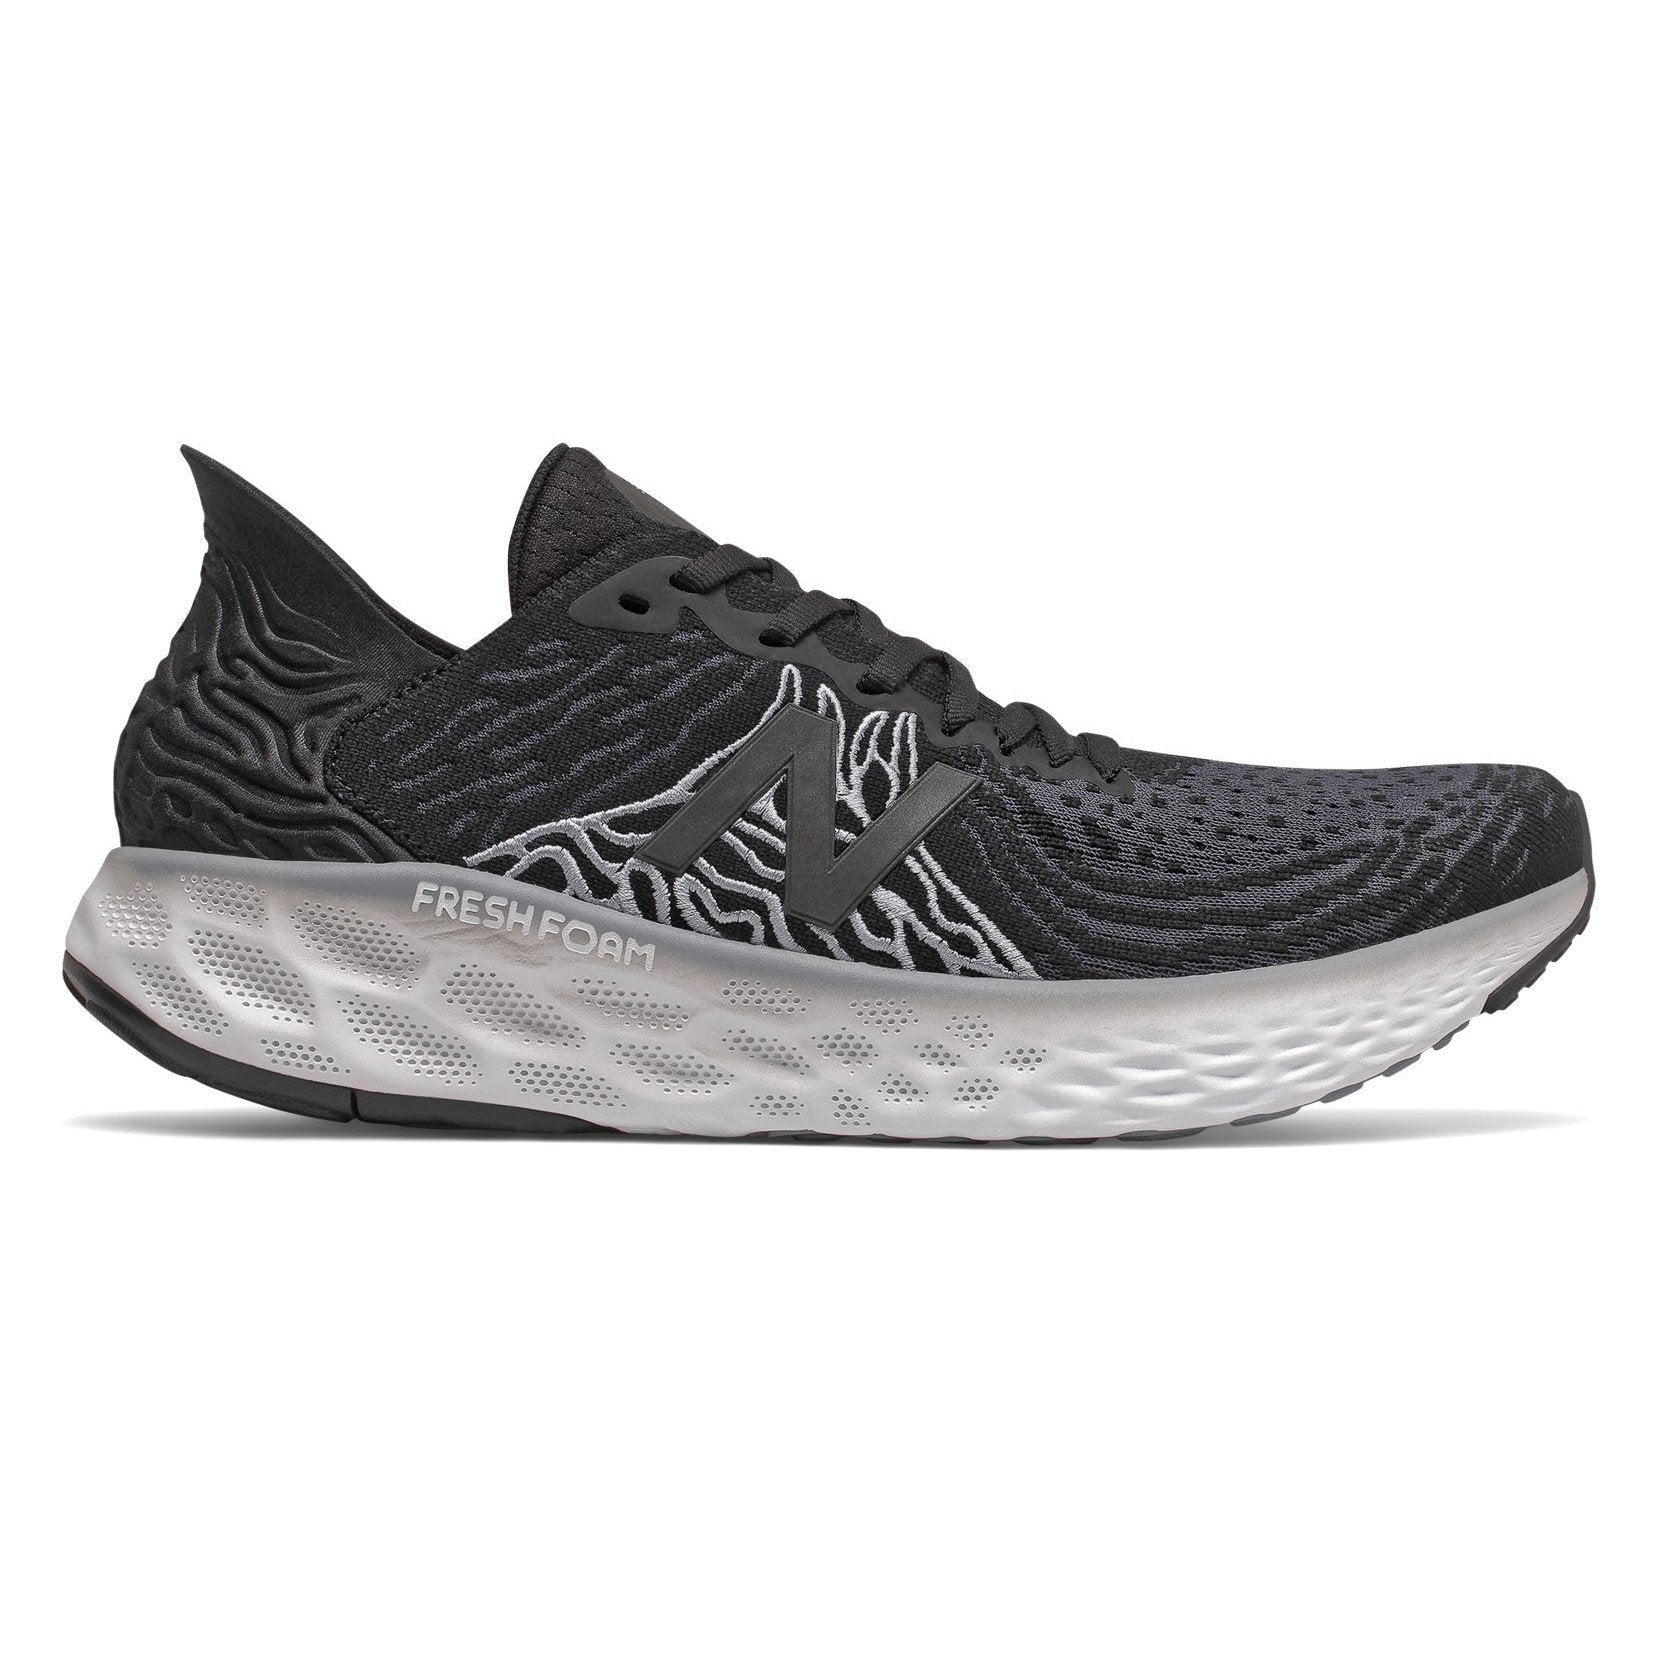 New Balance Men's Fresh Foam 1080v10 - BlackToe Running Inc. - Toronto Running Specialty Store